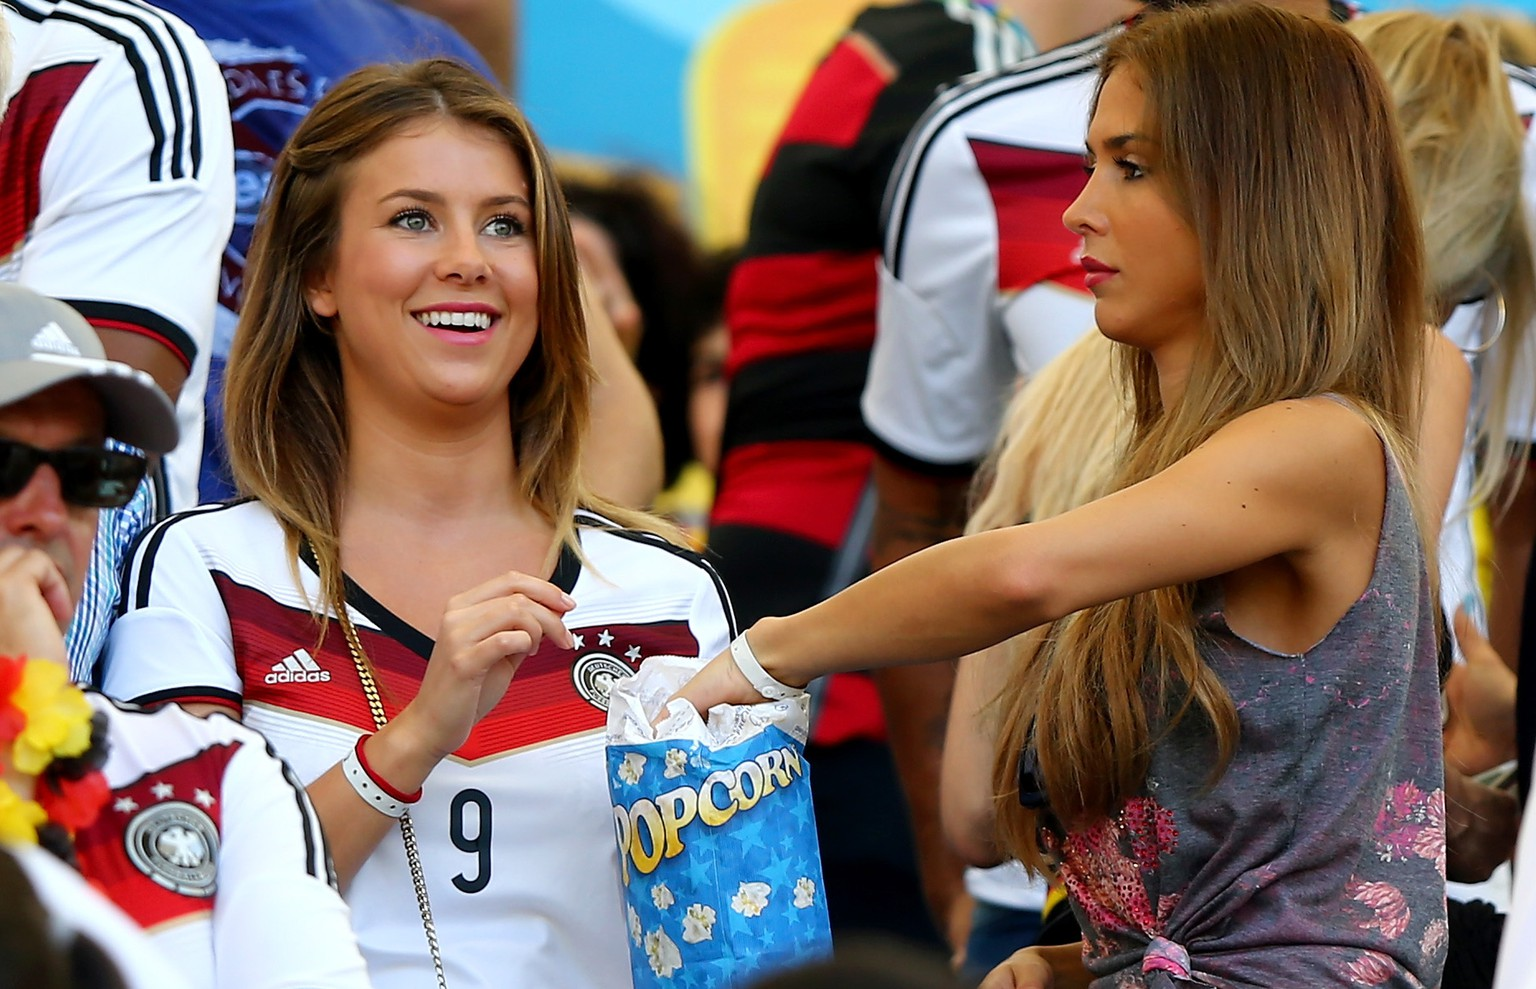 RIO DE JANEIRO, BRAZIL - JULY 04:  Montana Yorke (L), girlfriend of Andre Schuerrle of Germany, and Ann-Kathrin Brommel, girlfriend of Mario Gotze of Germany, looks on during the 2014 FIFA World Cup Brazil Quarter Final match between France and Germany at Maracana on July 4, 2014 in Rio de Janeiro, Brazil.  (Photo by Martin Rose/Getty Images)